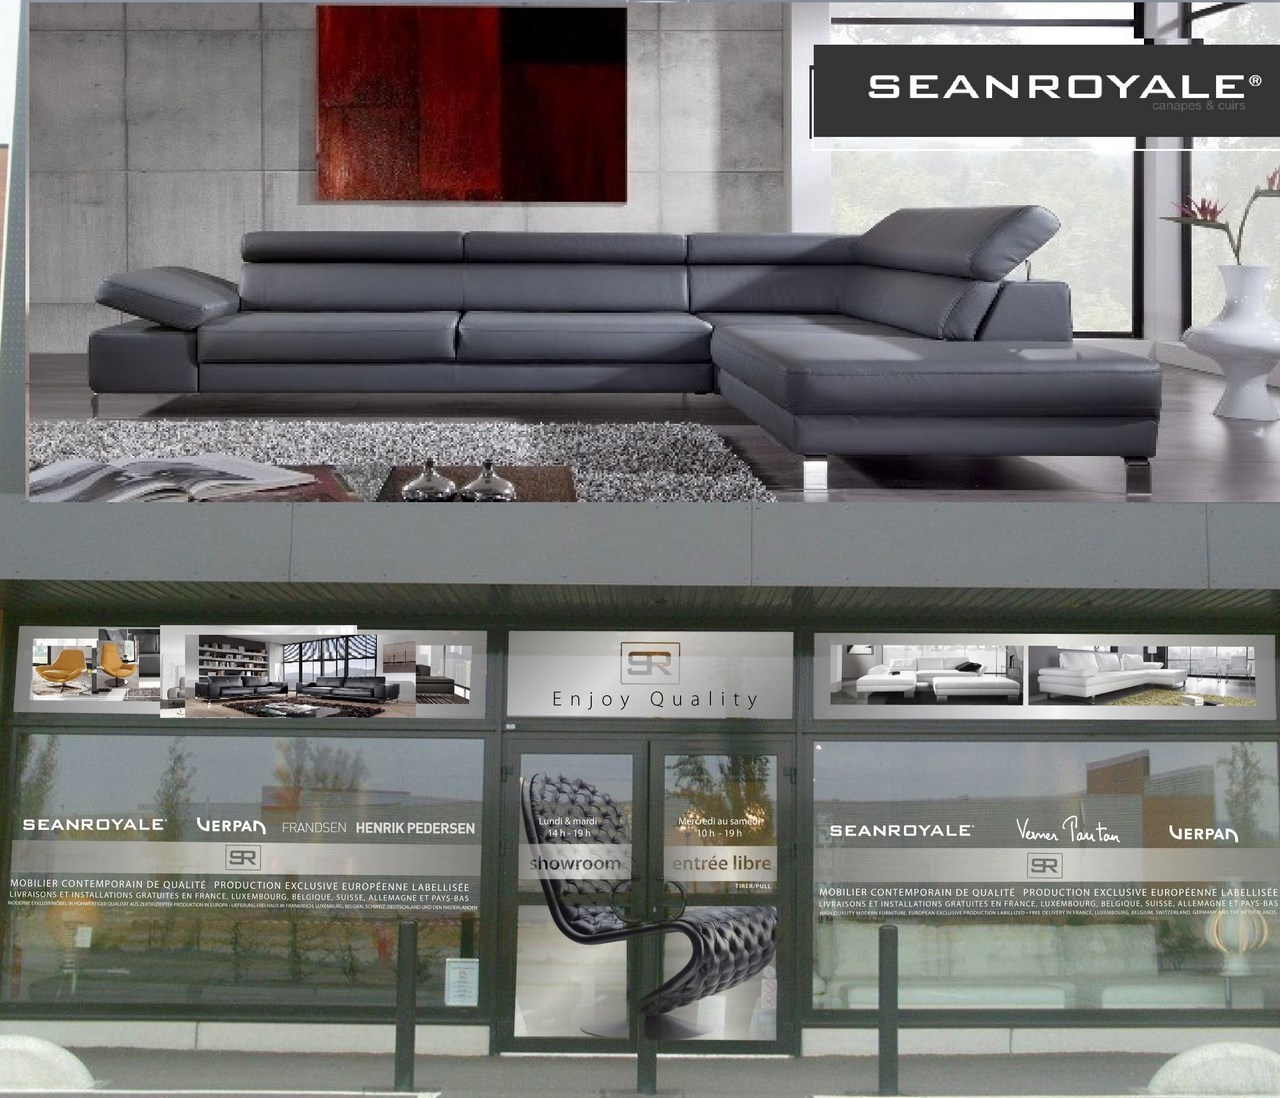 magasin seanroyale metz luxembourg blog de seanroyale blog de seanroyale. Black Bedroom Furniture Sets. Home Design Ideas